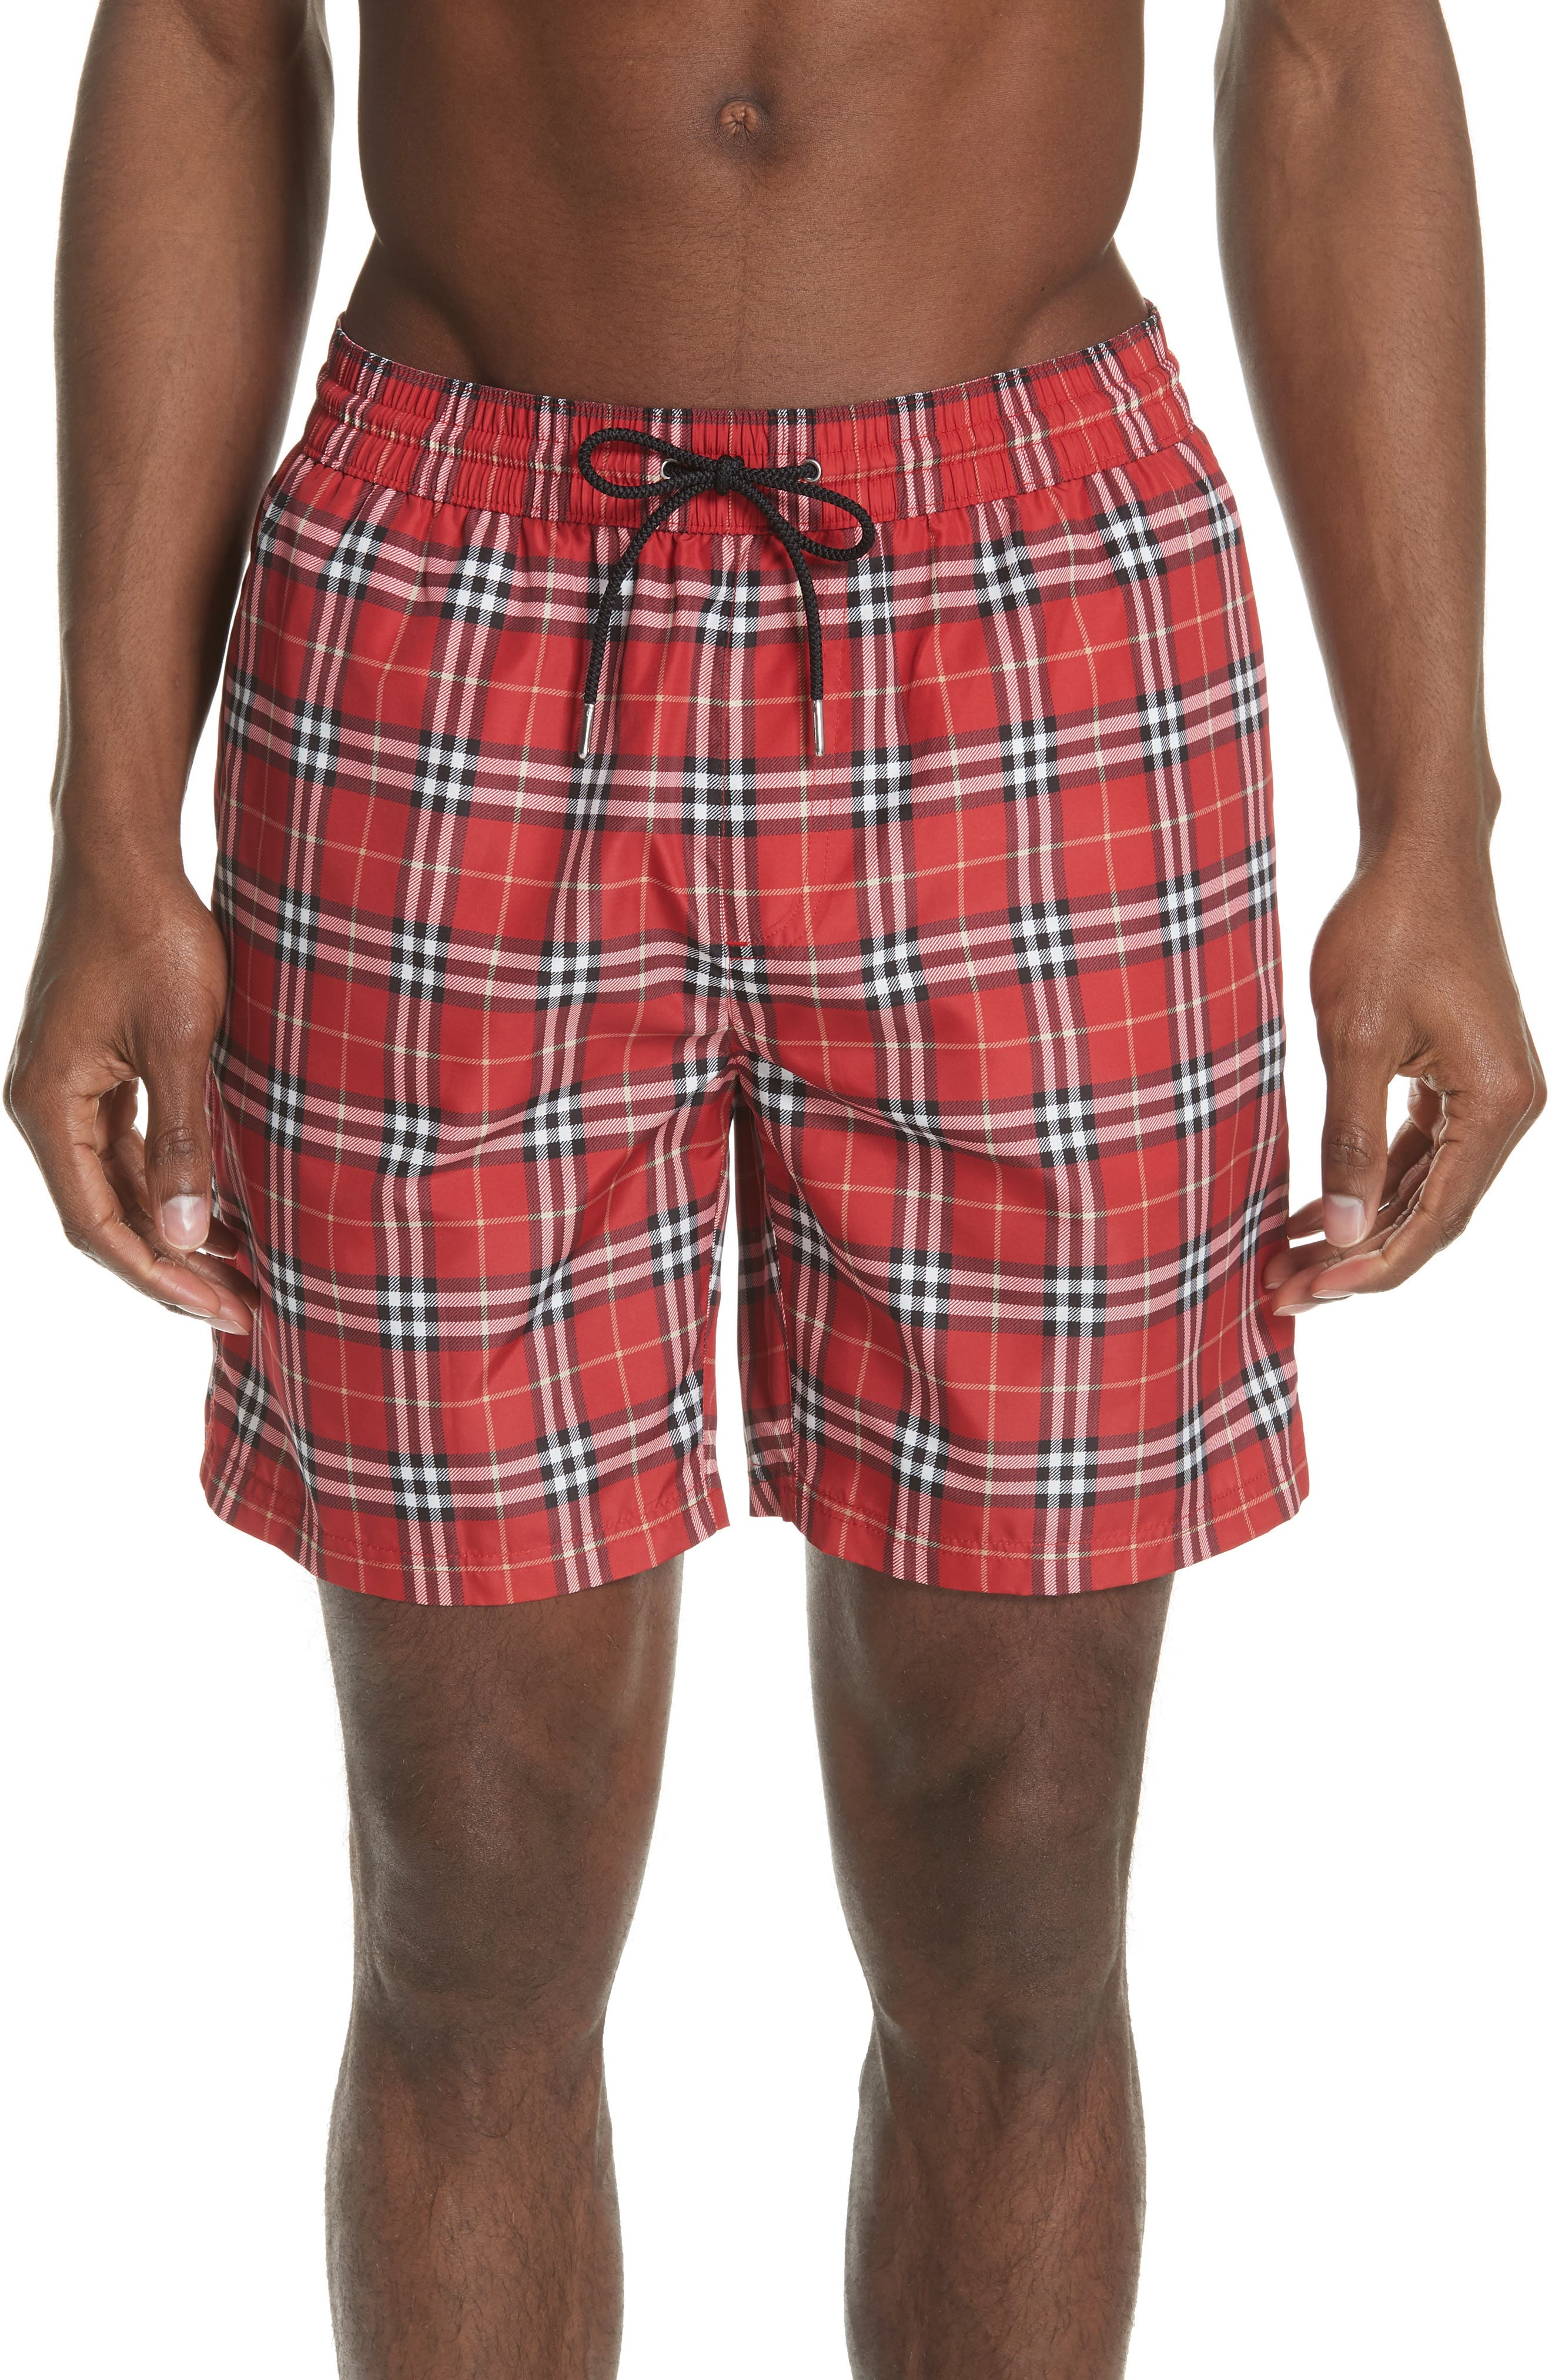 Guides New Check Swim Trunks,                             Main thumbnail 1, color,                             Parade Red